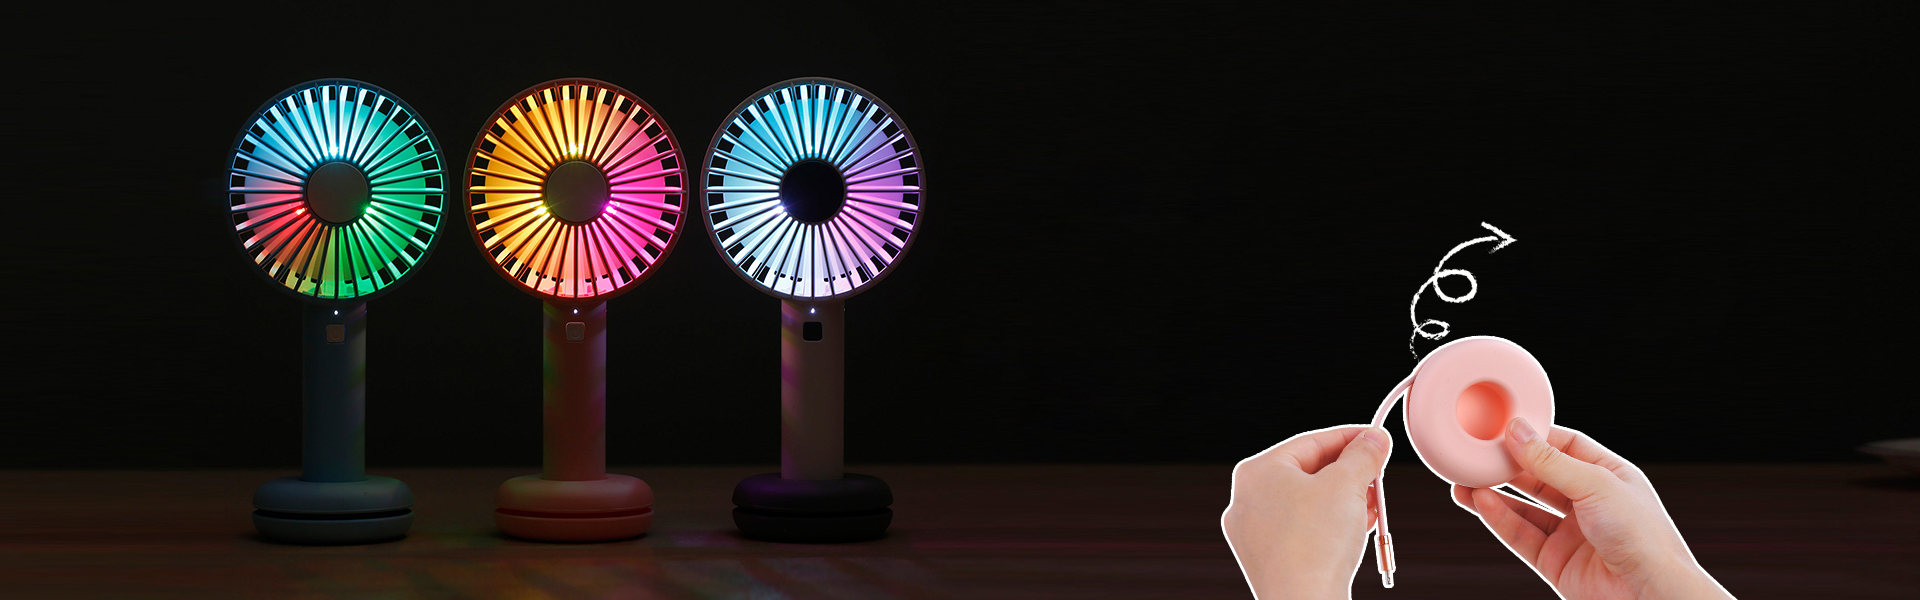 Loskii HF-202 Portable Desktop Handheld Doughnut Design Base LED Night Light USB Rechargeable 3 Grade Adjustment Fan